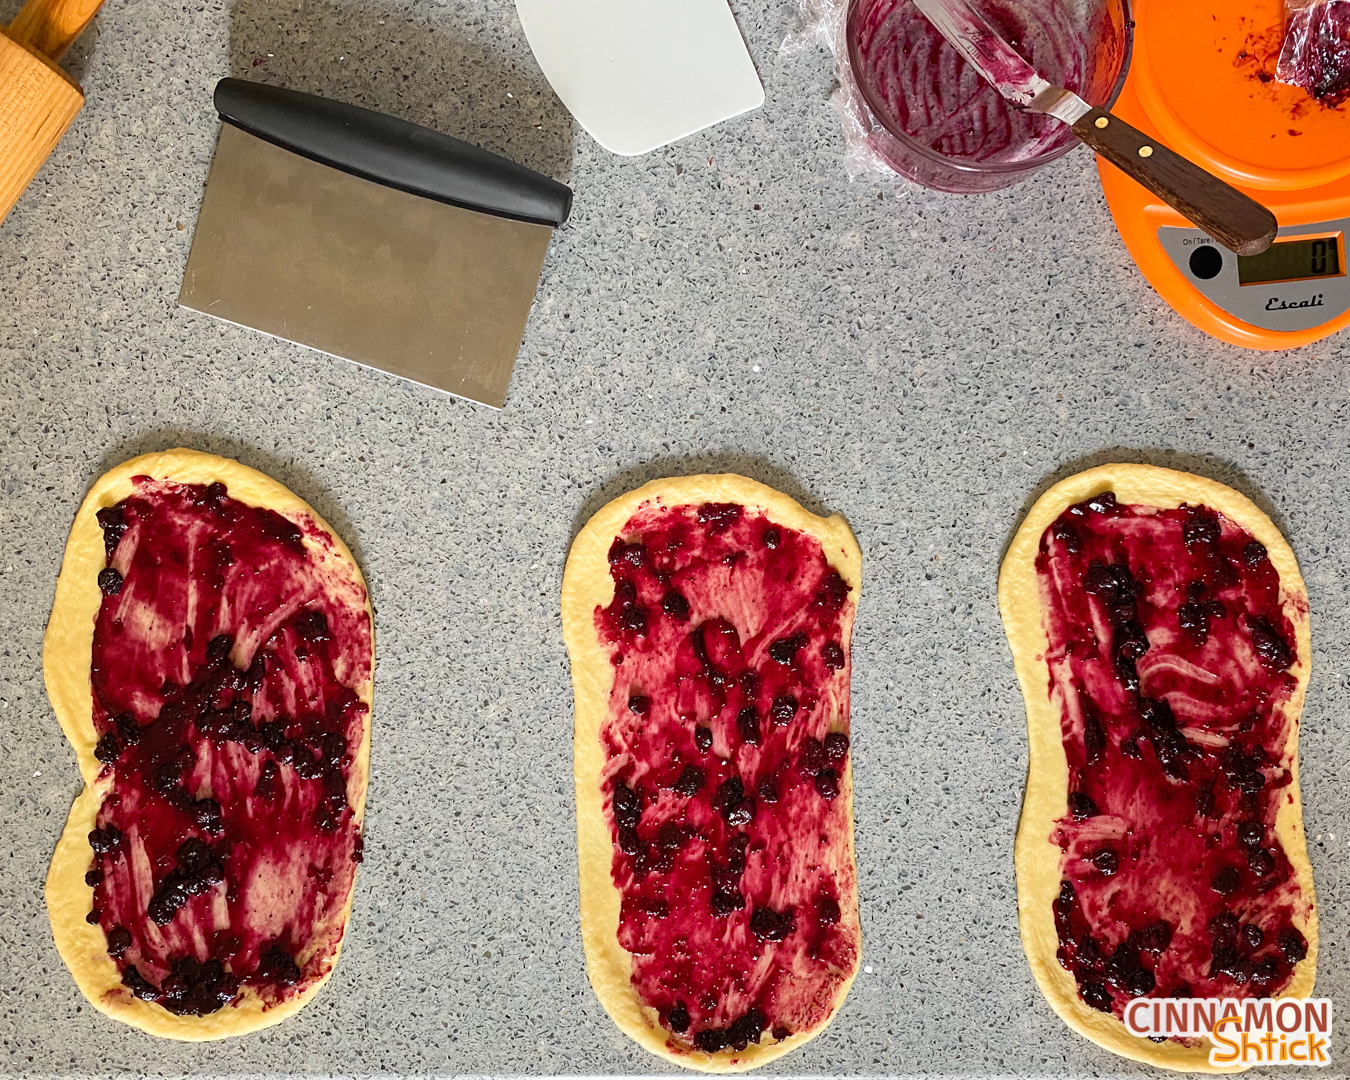 Three strands of challah dough rolled out to rectangles with blueberry filling spread on each.